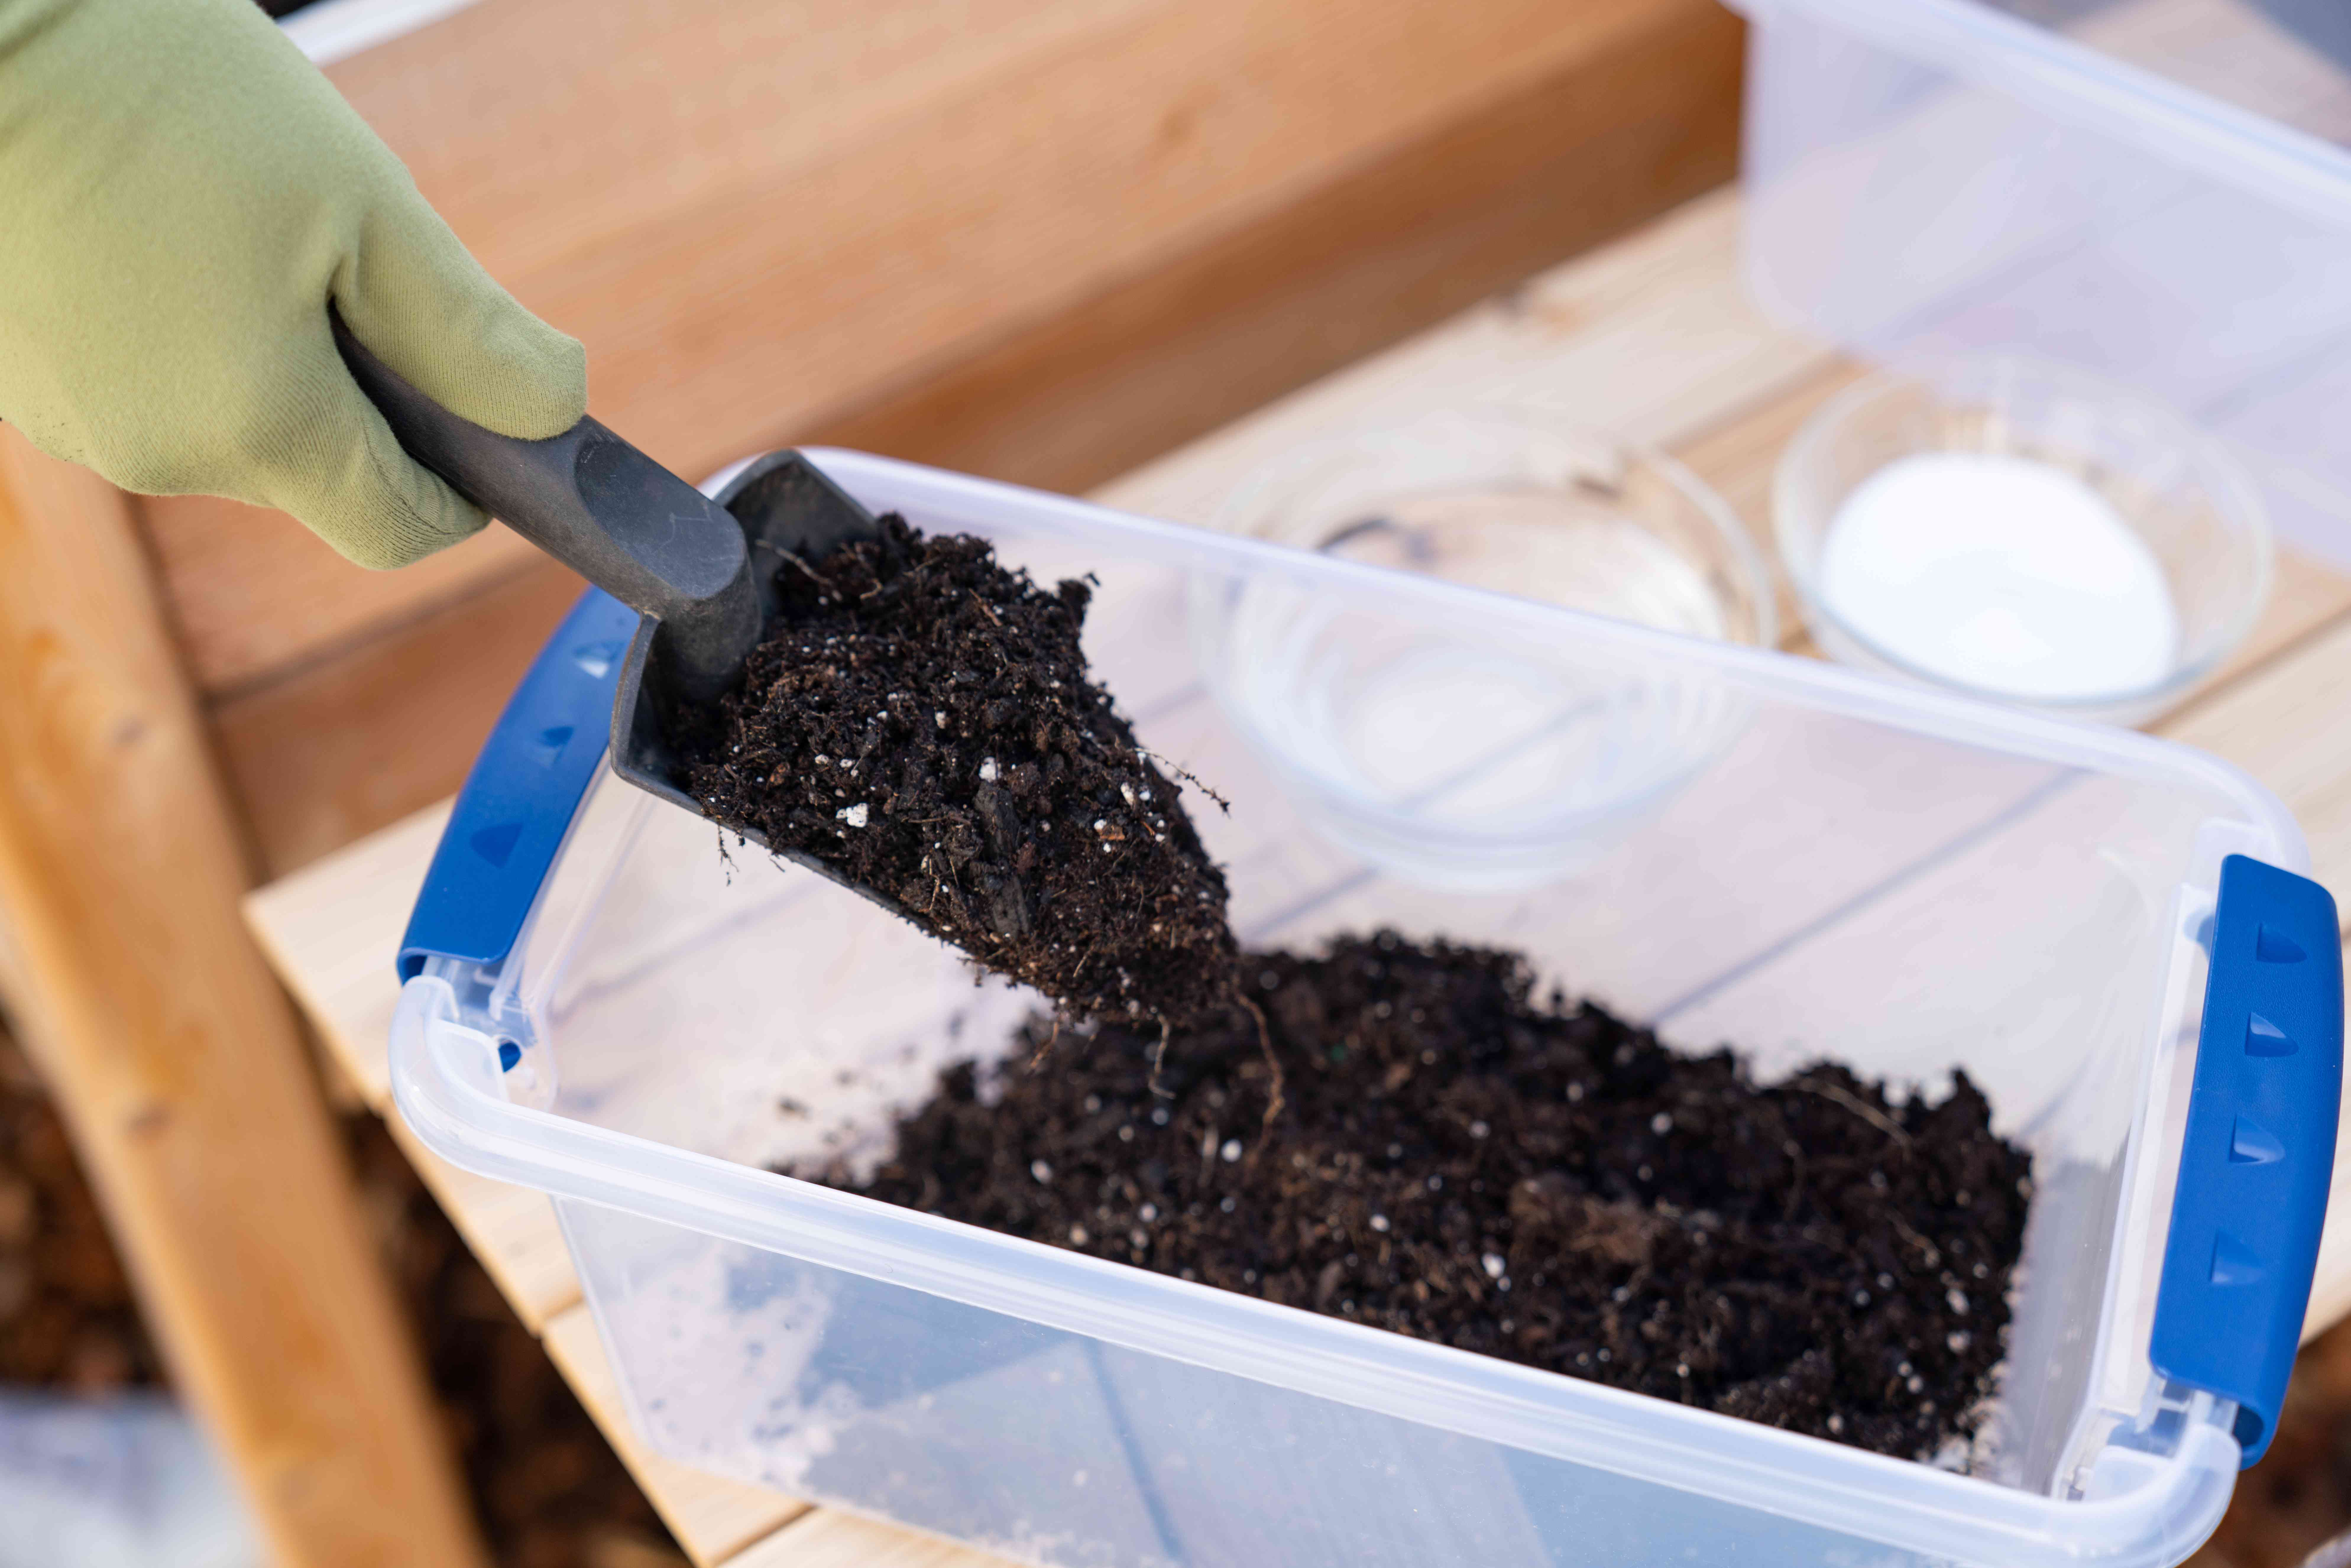 person scooping a soil sample into a container